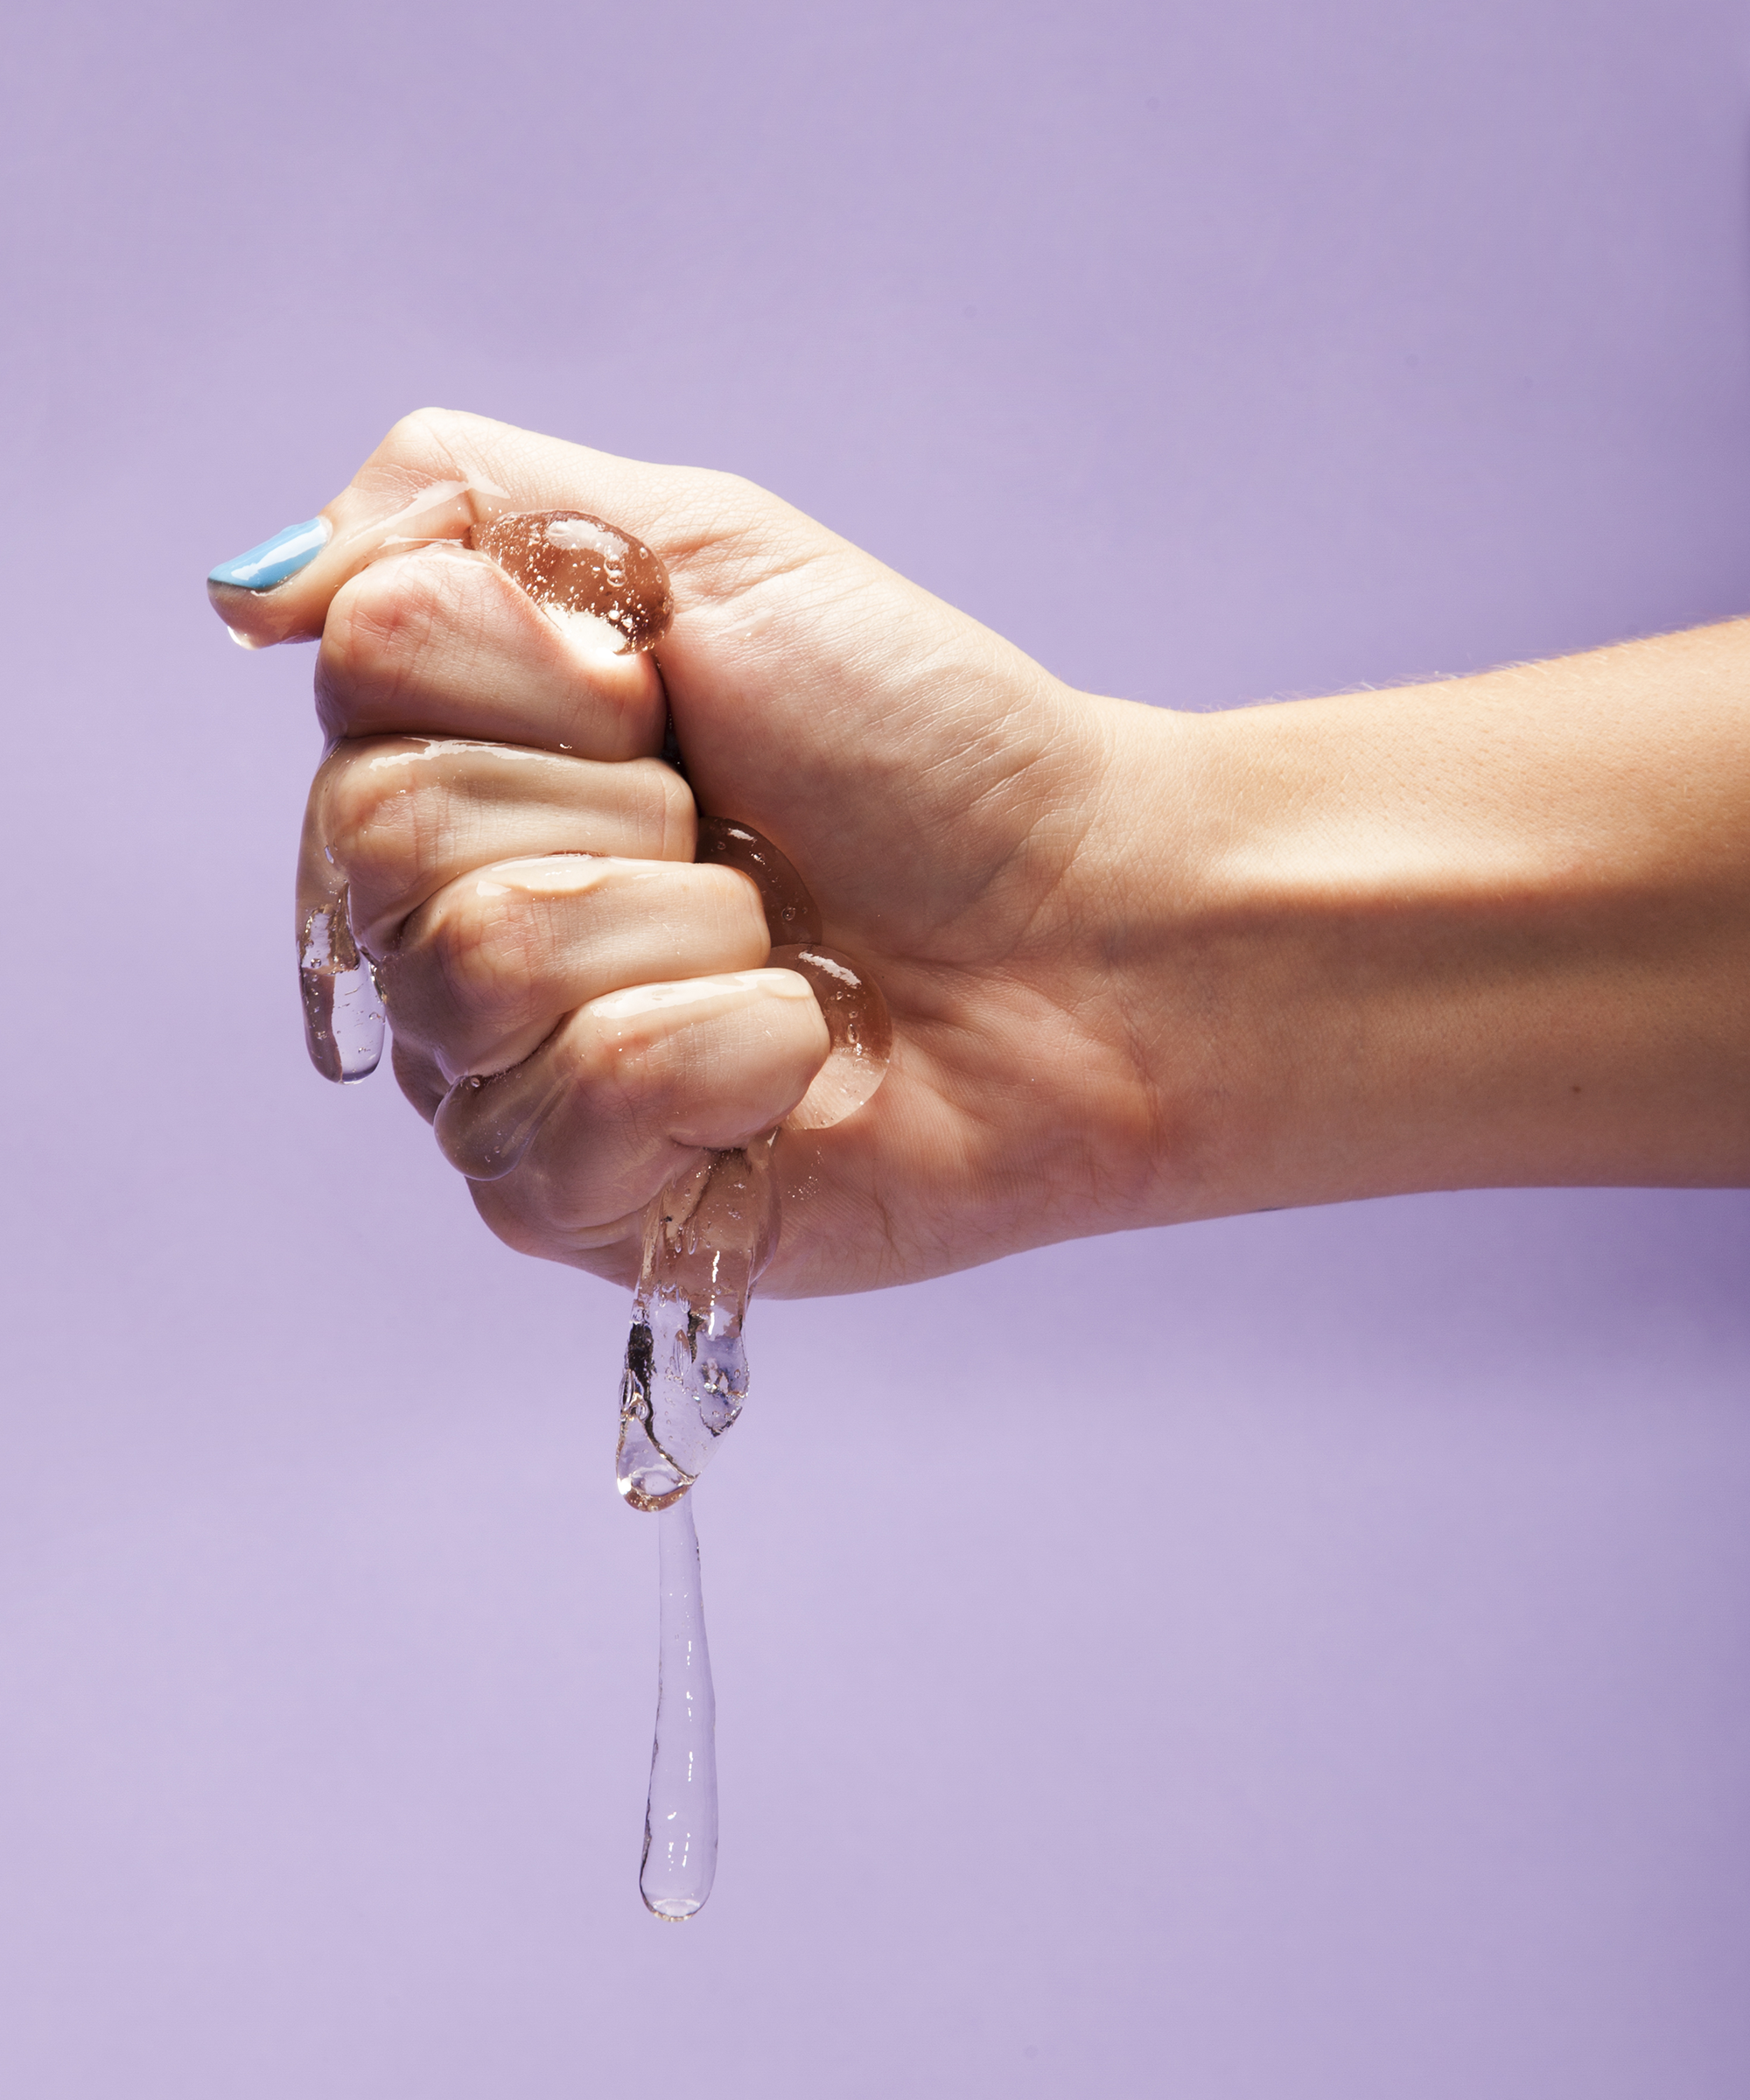 What causes women to squirt during orgasm